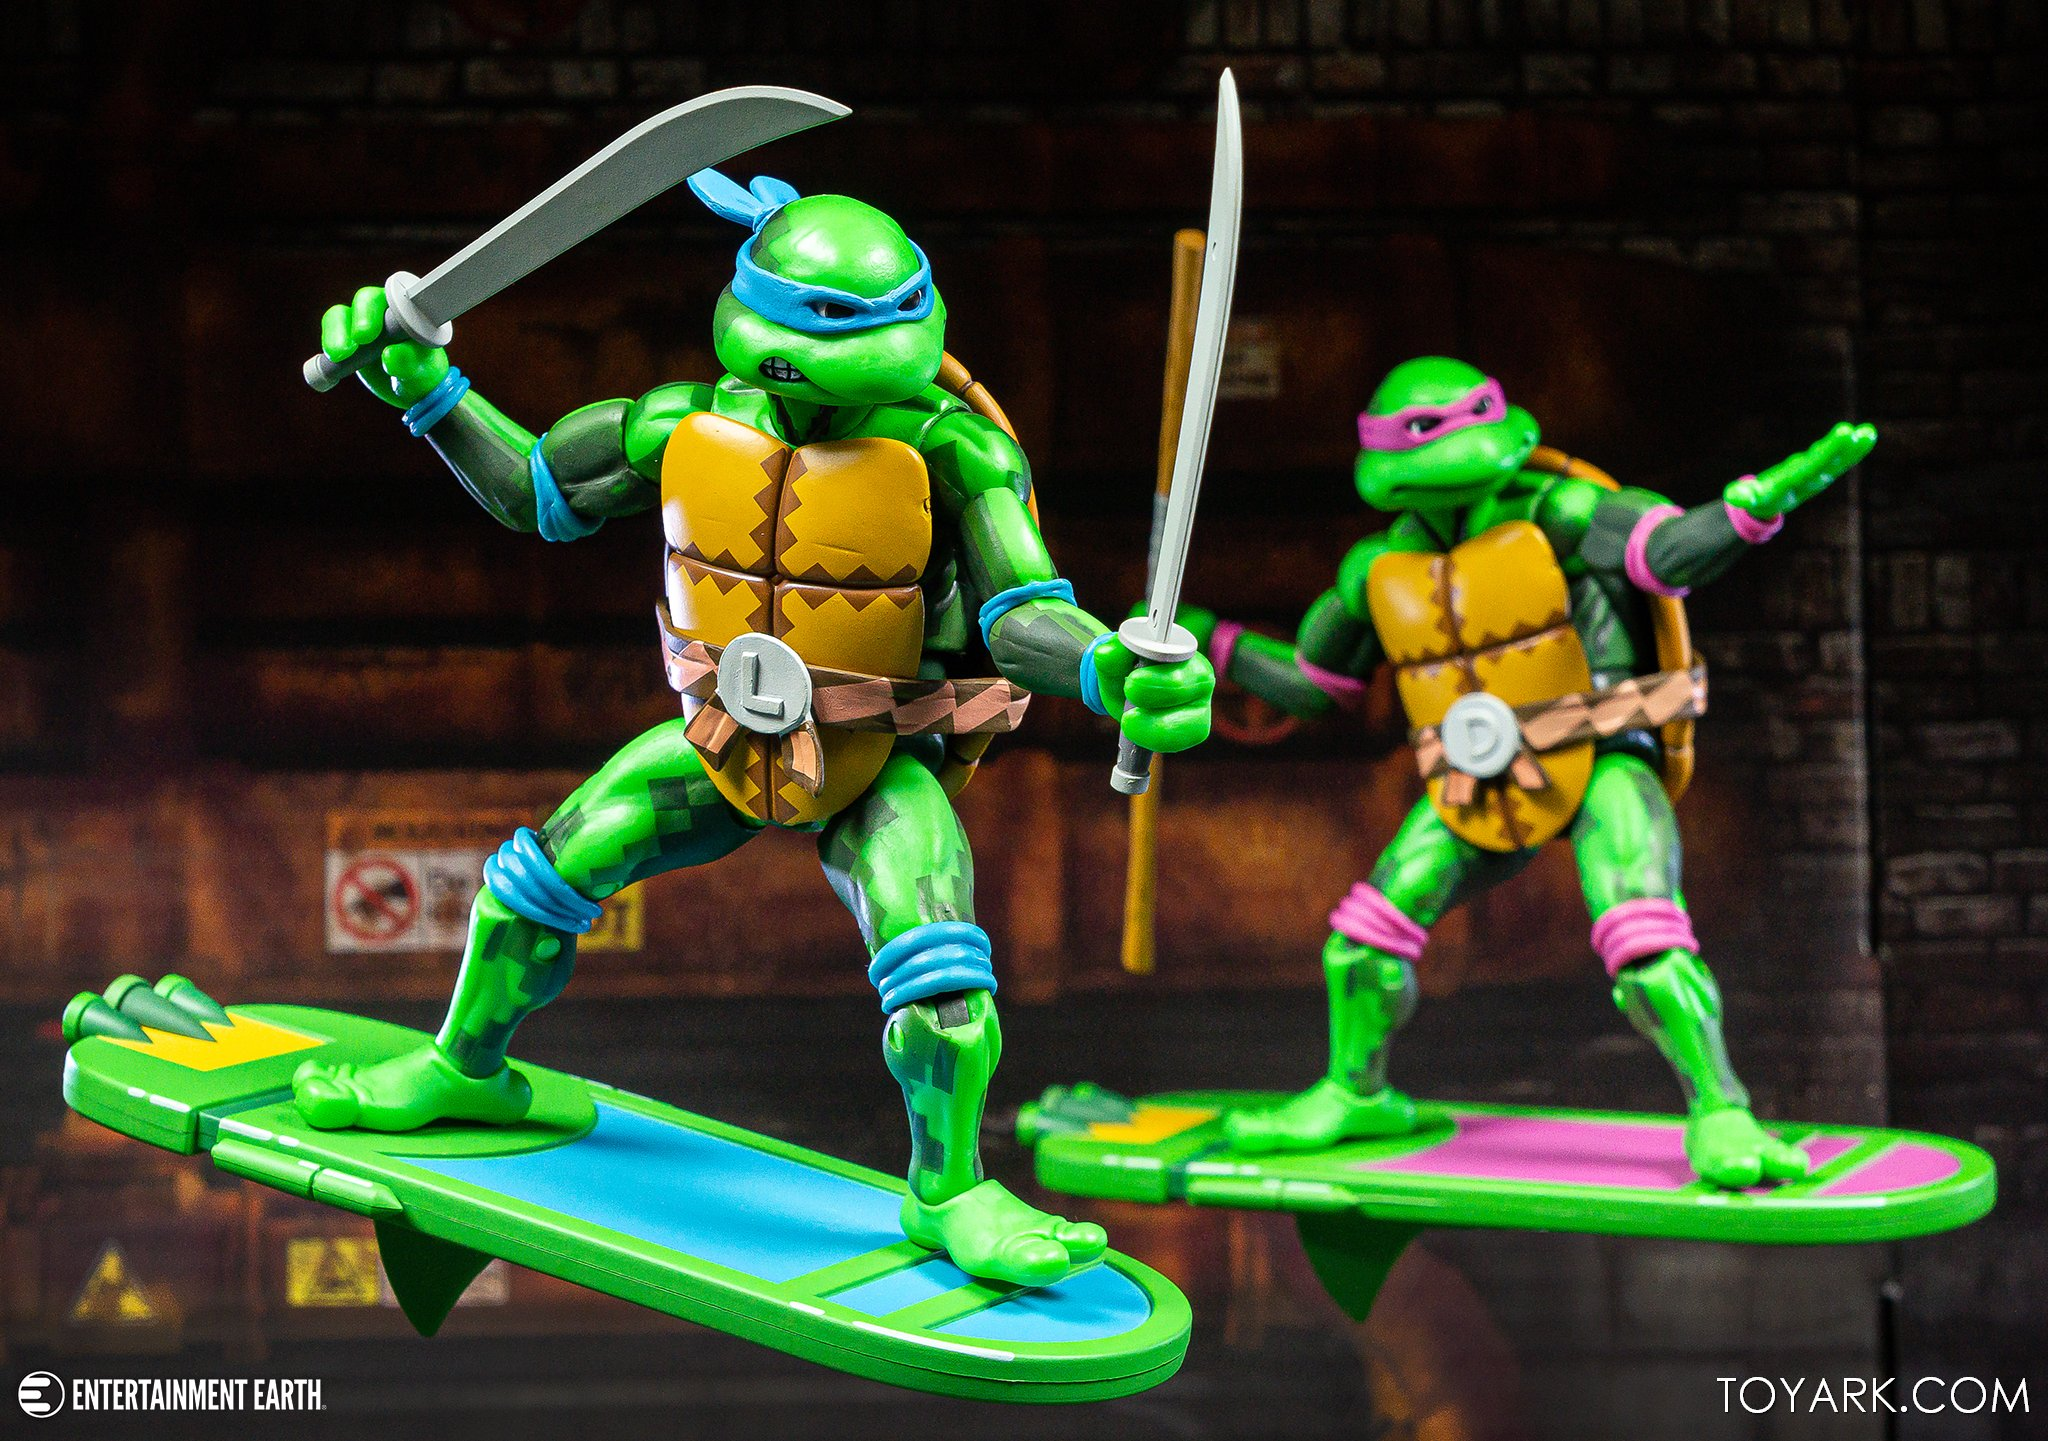 https://news.toyark.com/wp-content/uploads/sites/4/2020/06/NECA-TMNT-Turtles-In-Time-S1-065.jpg